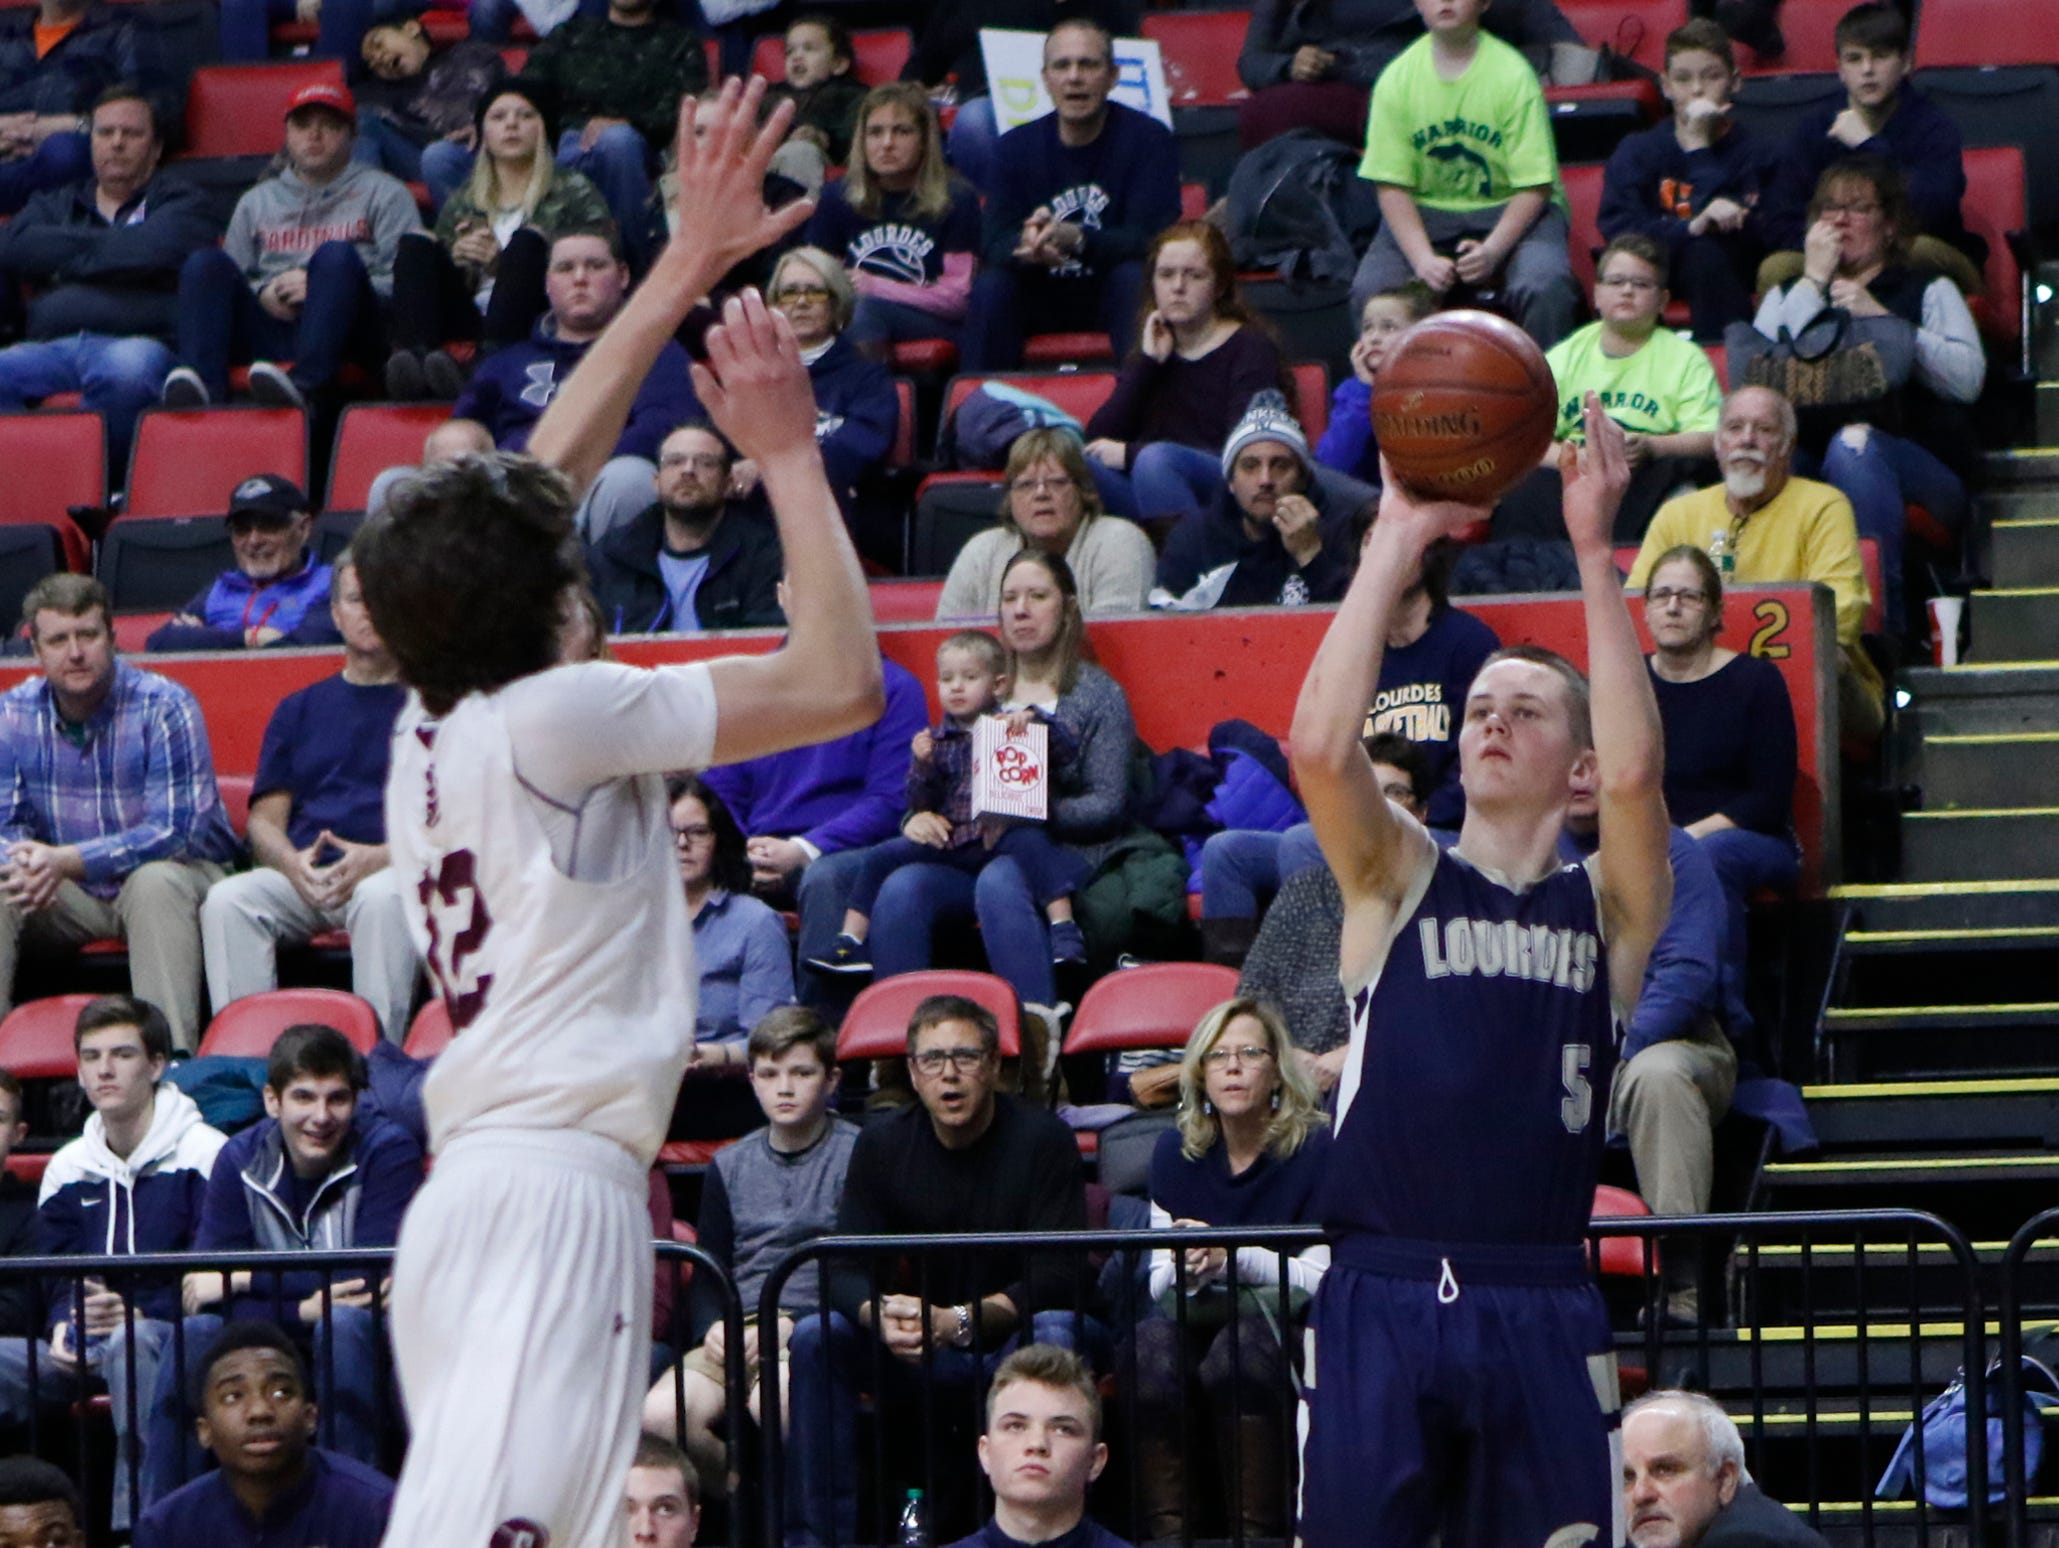 Our Lady of Lourdes's Aiden Hildebrand (5) throws up a 3-point shot during their 70-67 win over Southampton 70-67 in the NYSPHSAA boys Class A semifinal basketball game at Floyd L. Maines Veterans Memorial Arena in Binghamton on Saturday, March 18, 2017.